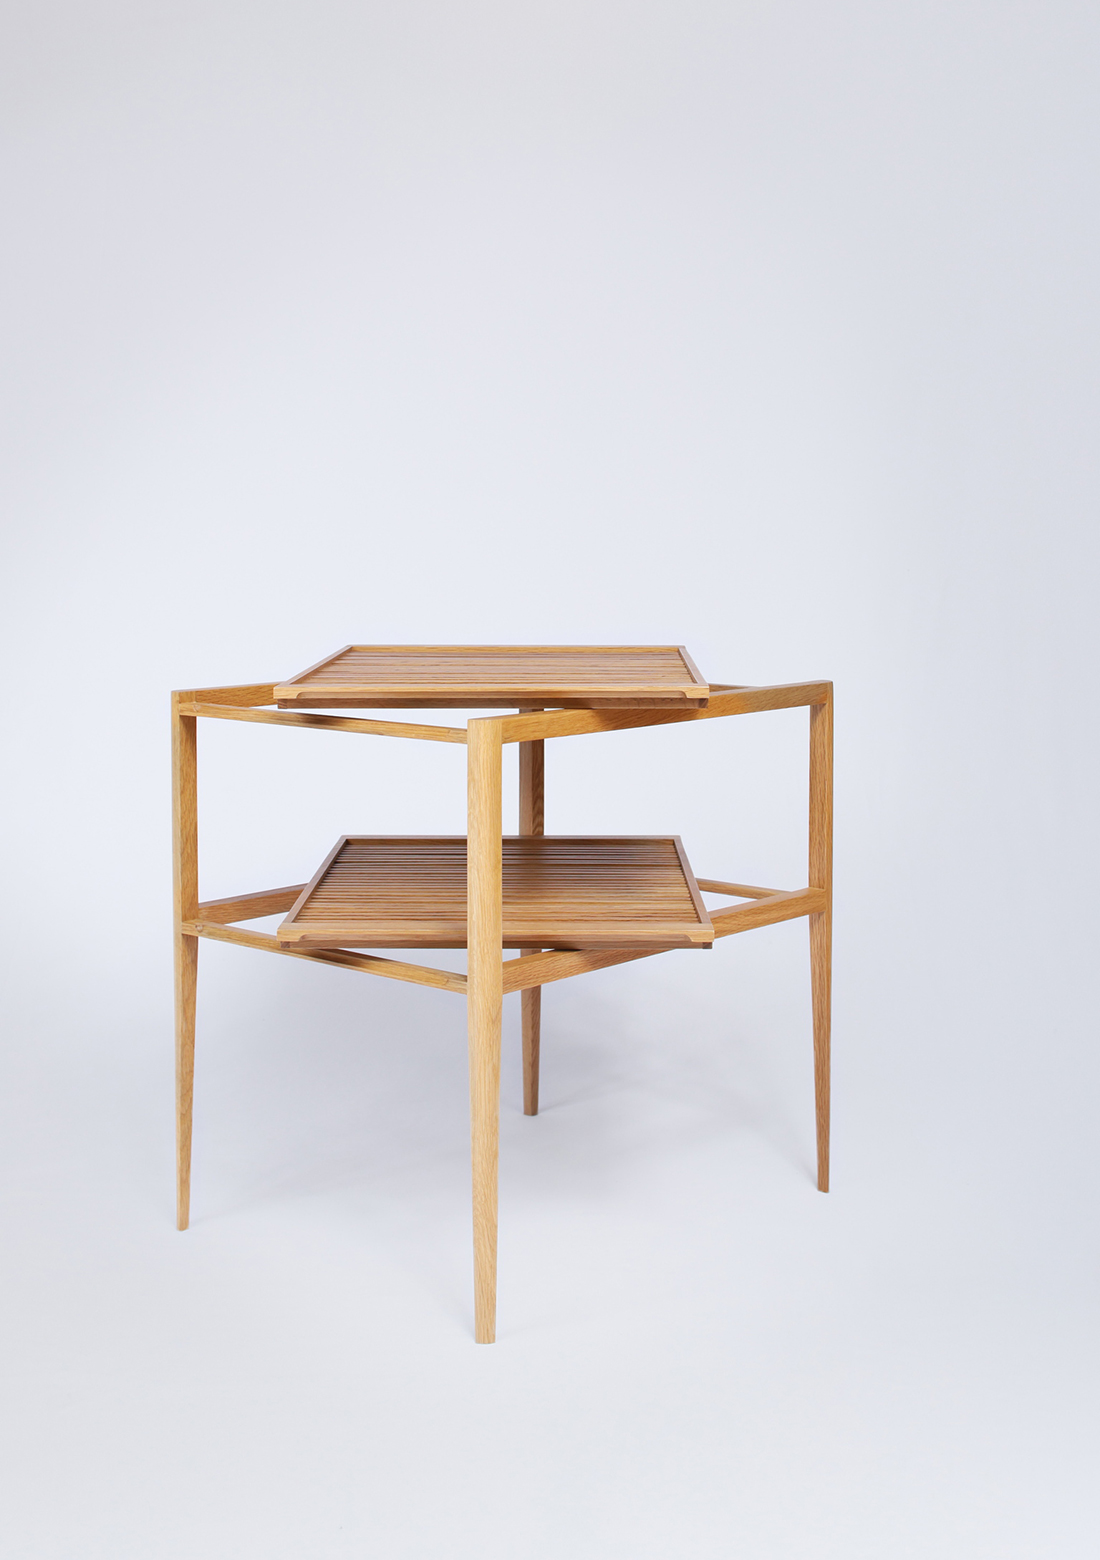 Trey Side Table, Folks 3.0 by Nathan Yong